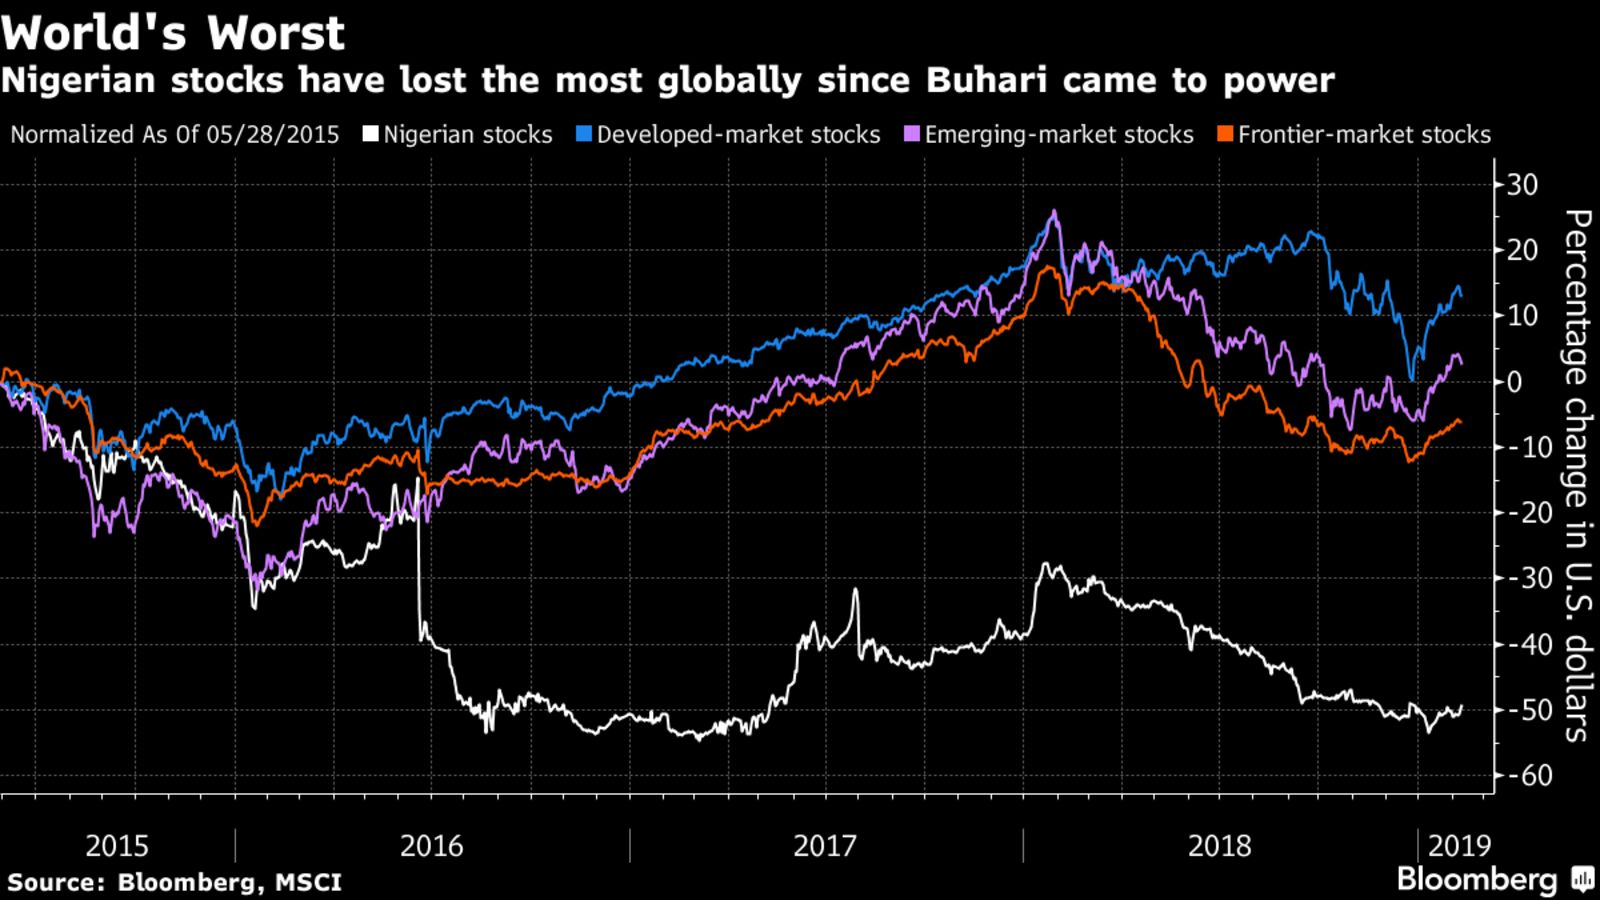 Nigerian stocks have lost the most globally since Buhari came to power